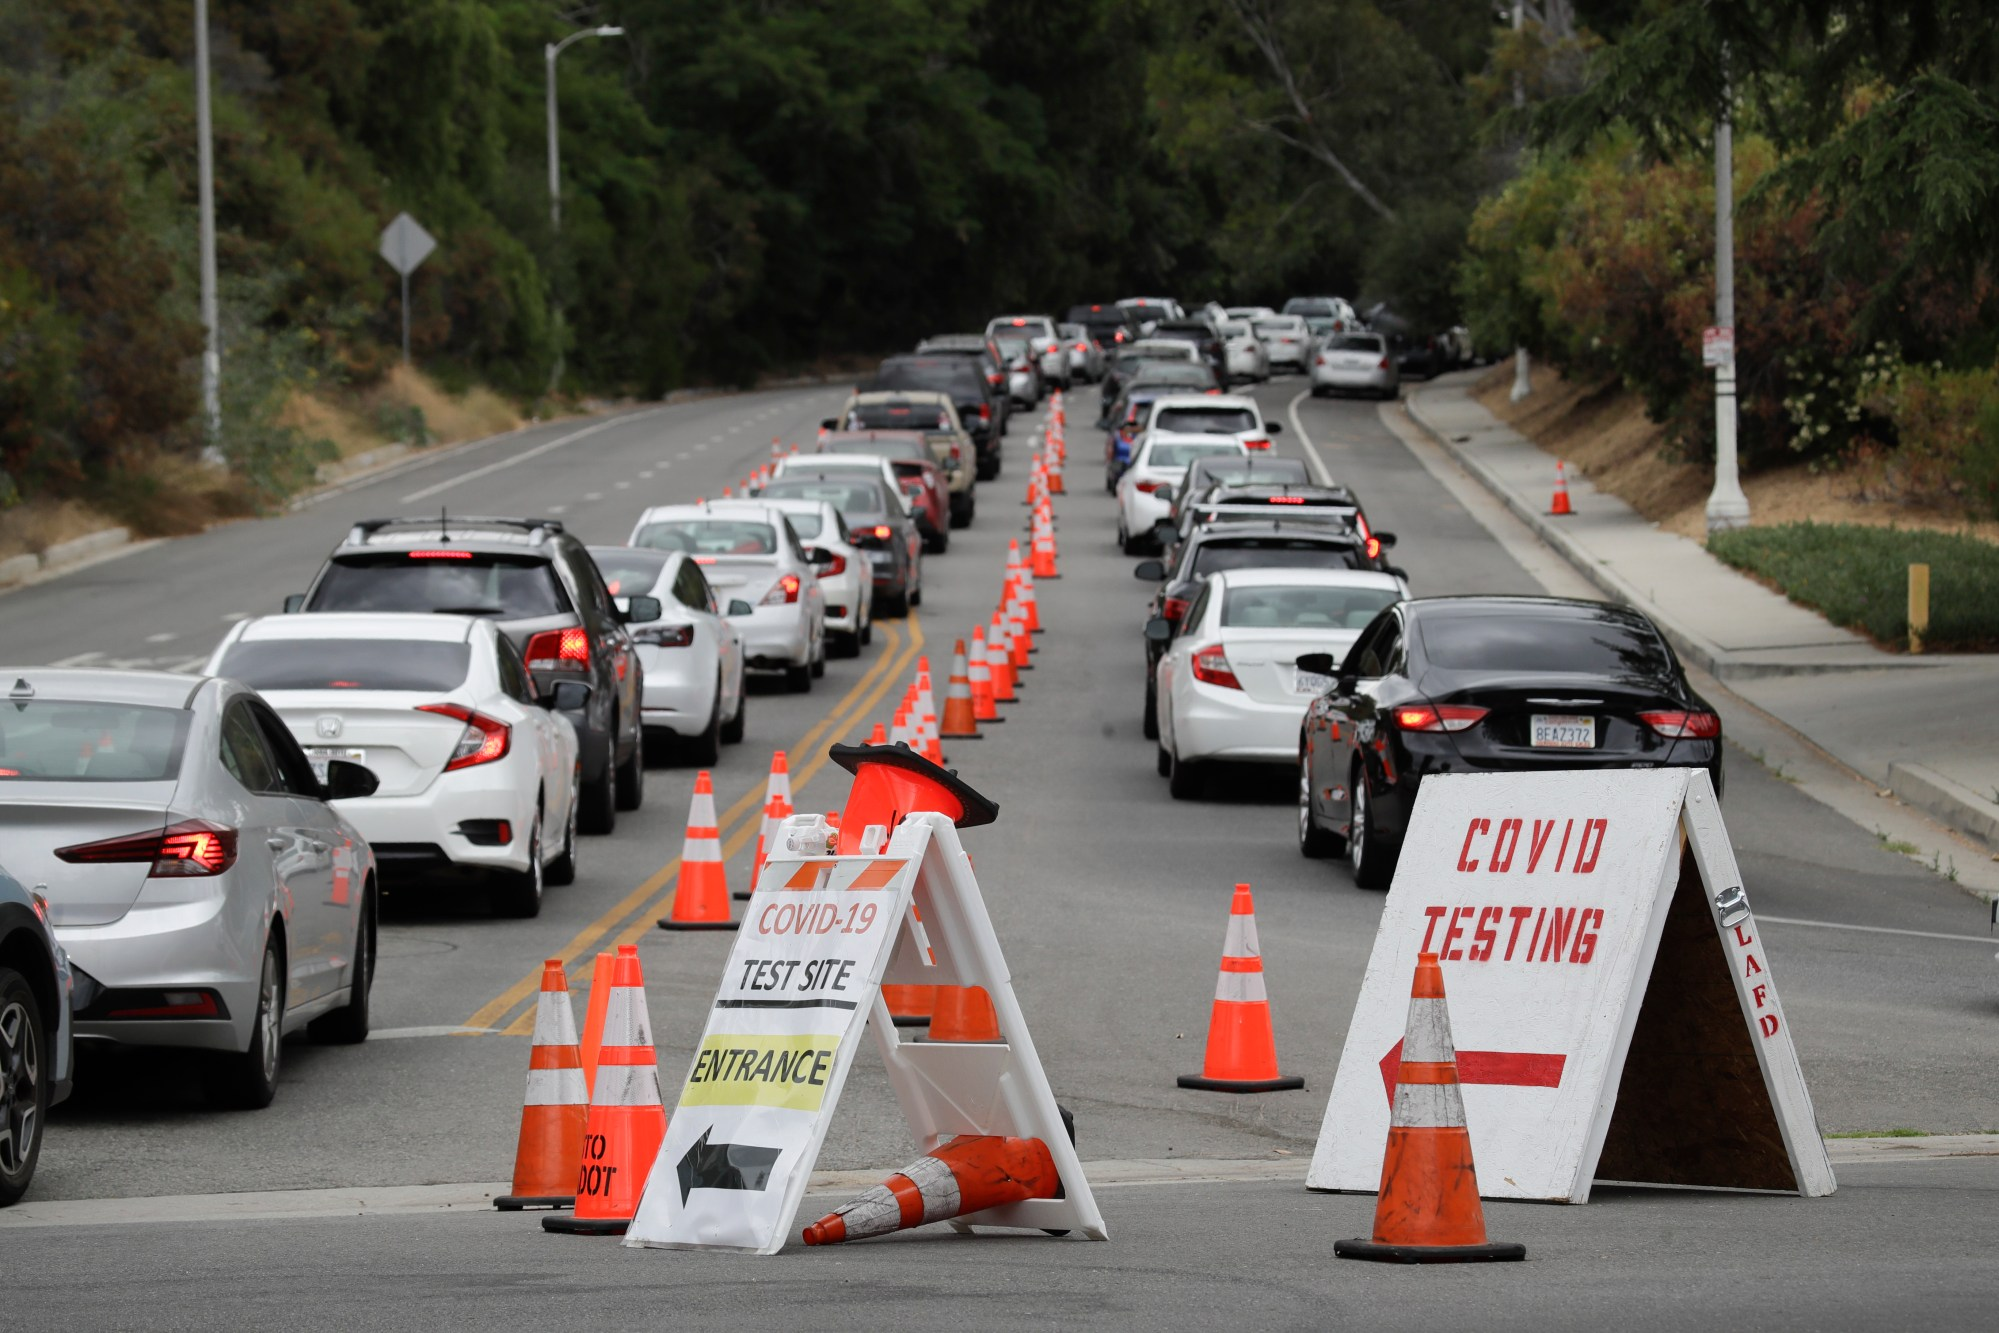 Motorists line up at a coronavirus testing site at Dodger Stadium Monday, June 29, 2020, in Los Angeles. (AP Photo/Marcio Jose Sanchez)